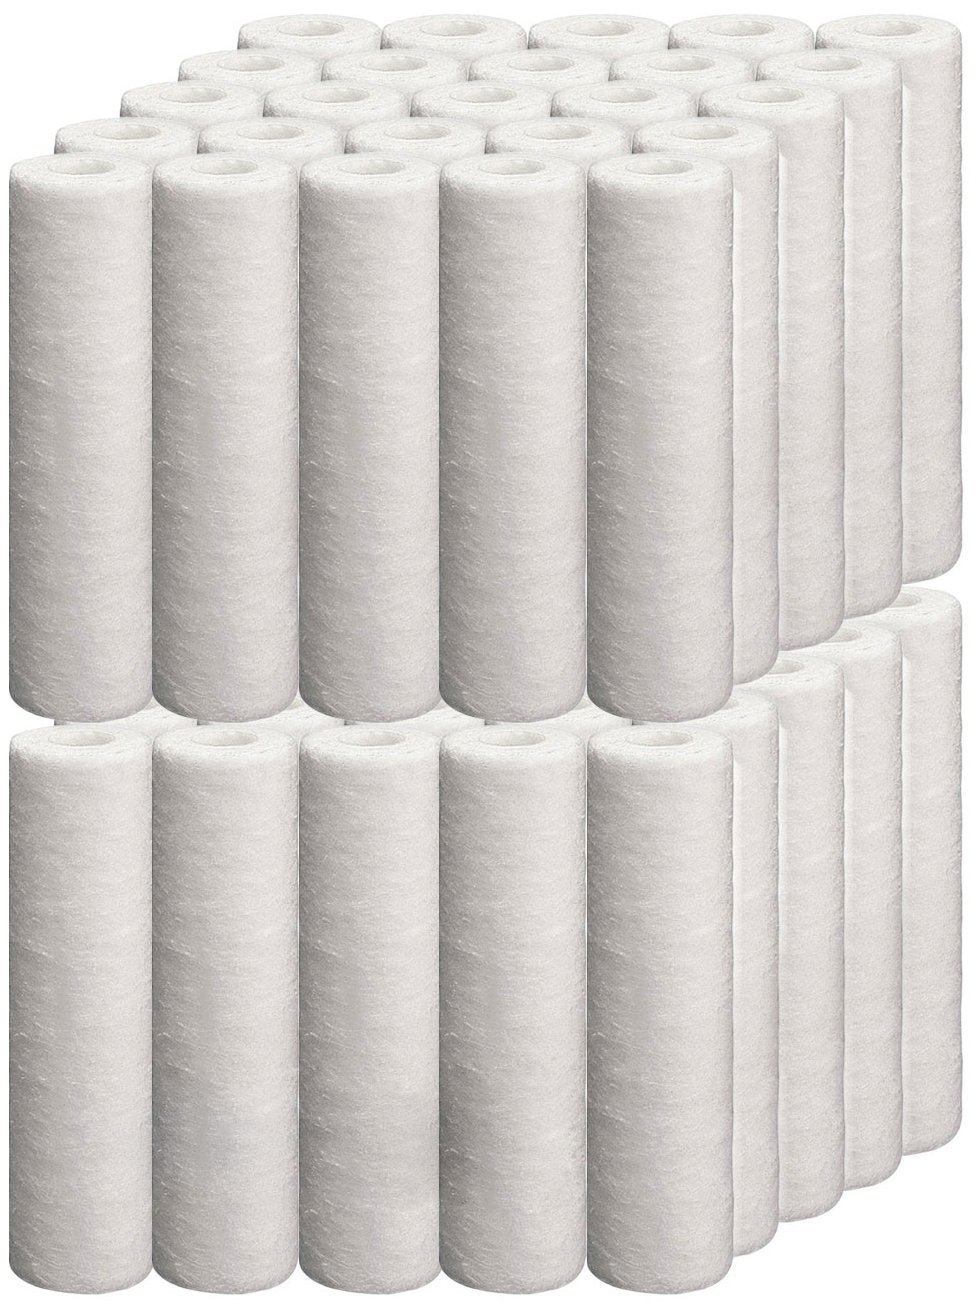 Universal 50 Pack 5-micron 10-Inch by 2.5-Inch Sediment Filter Cartridges, 10''x2.5'' by Isopure Water